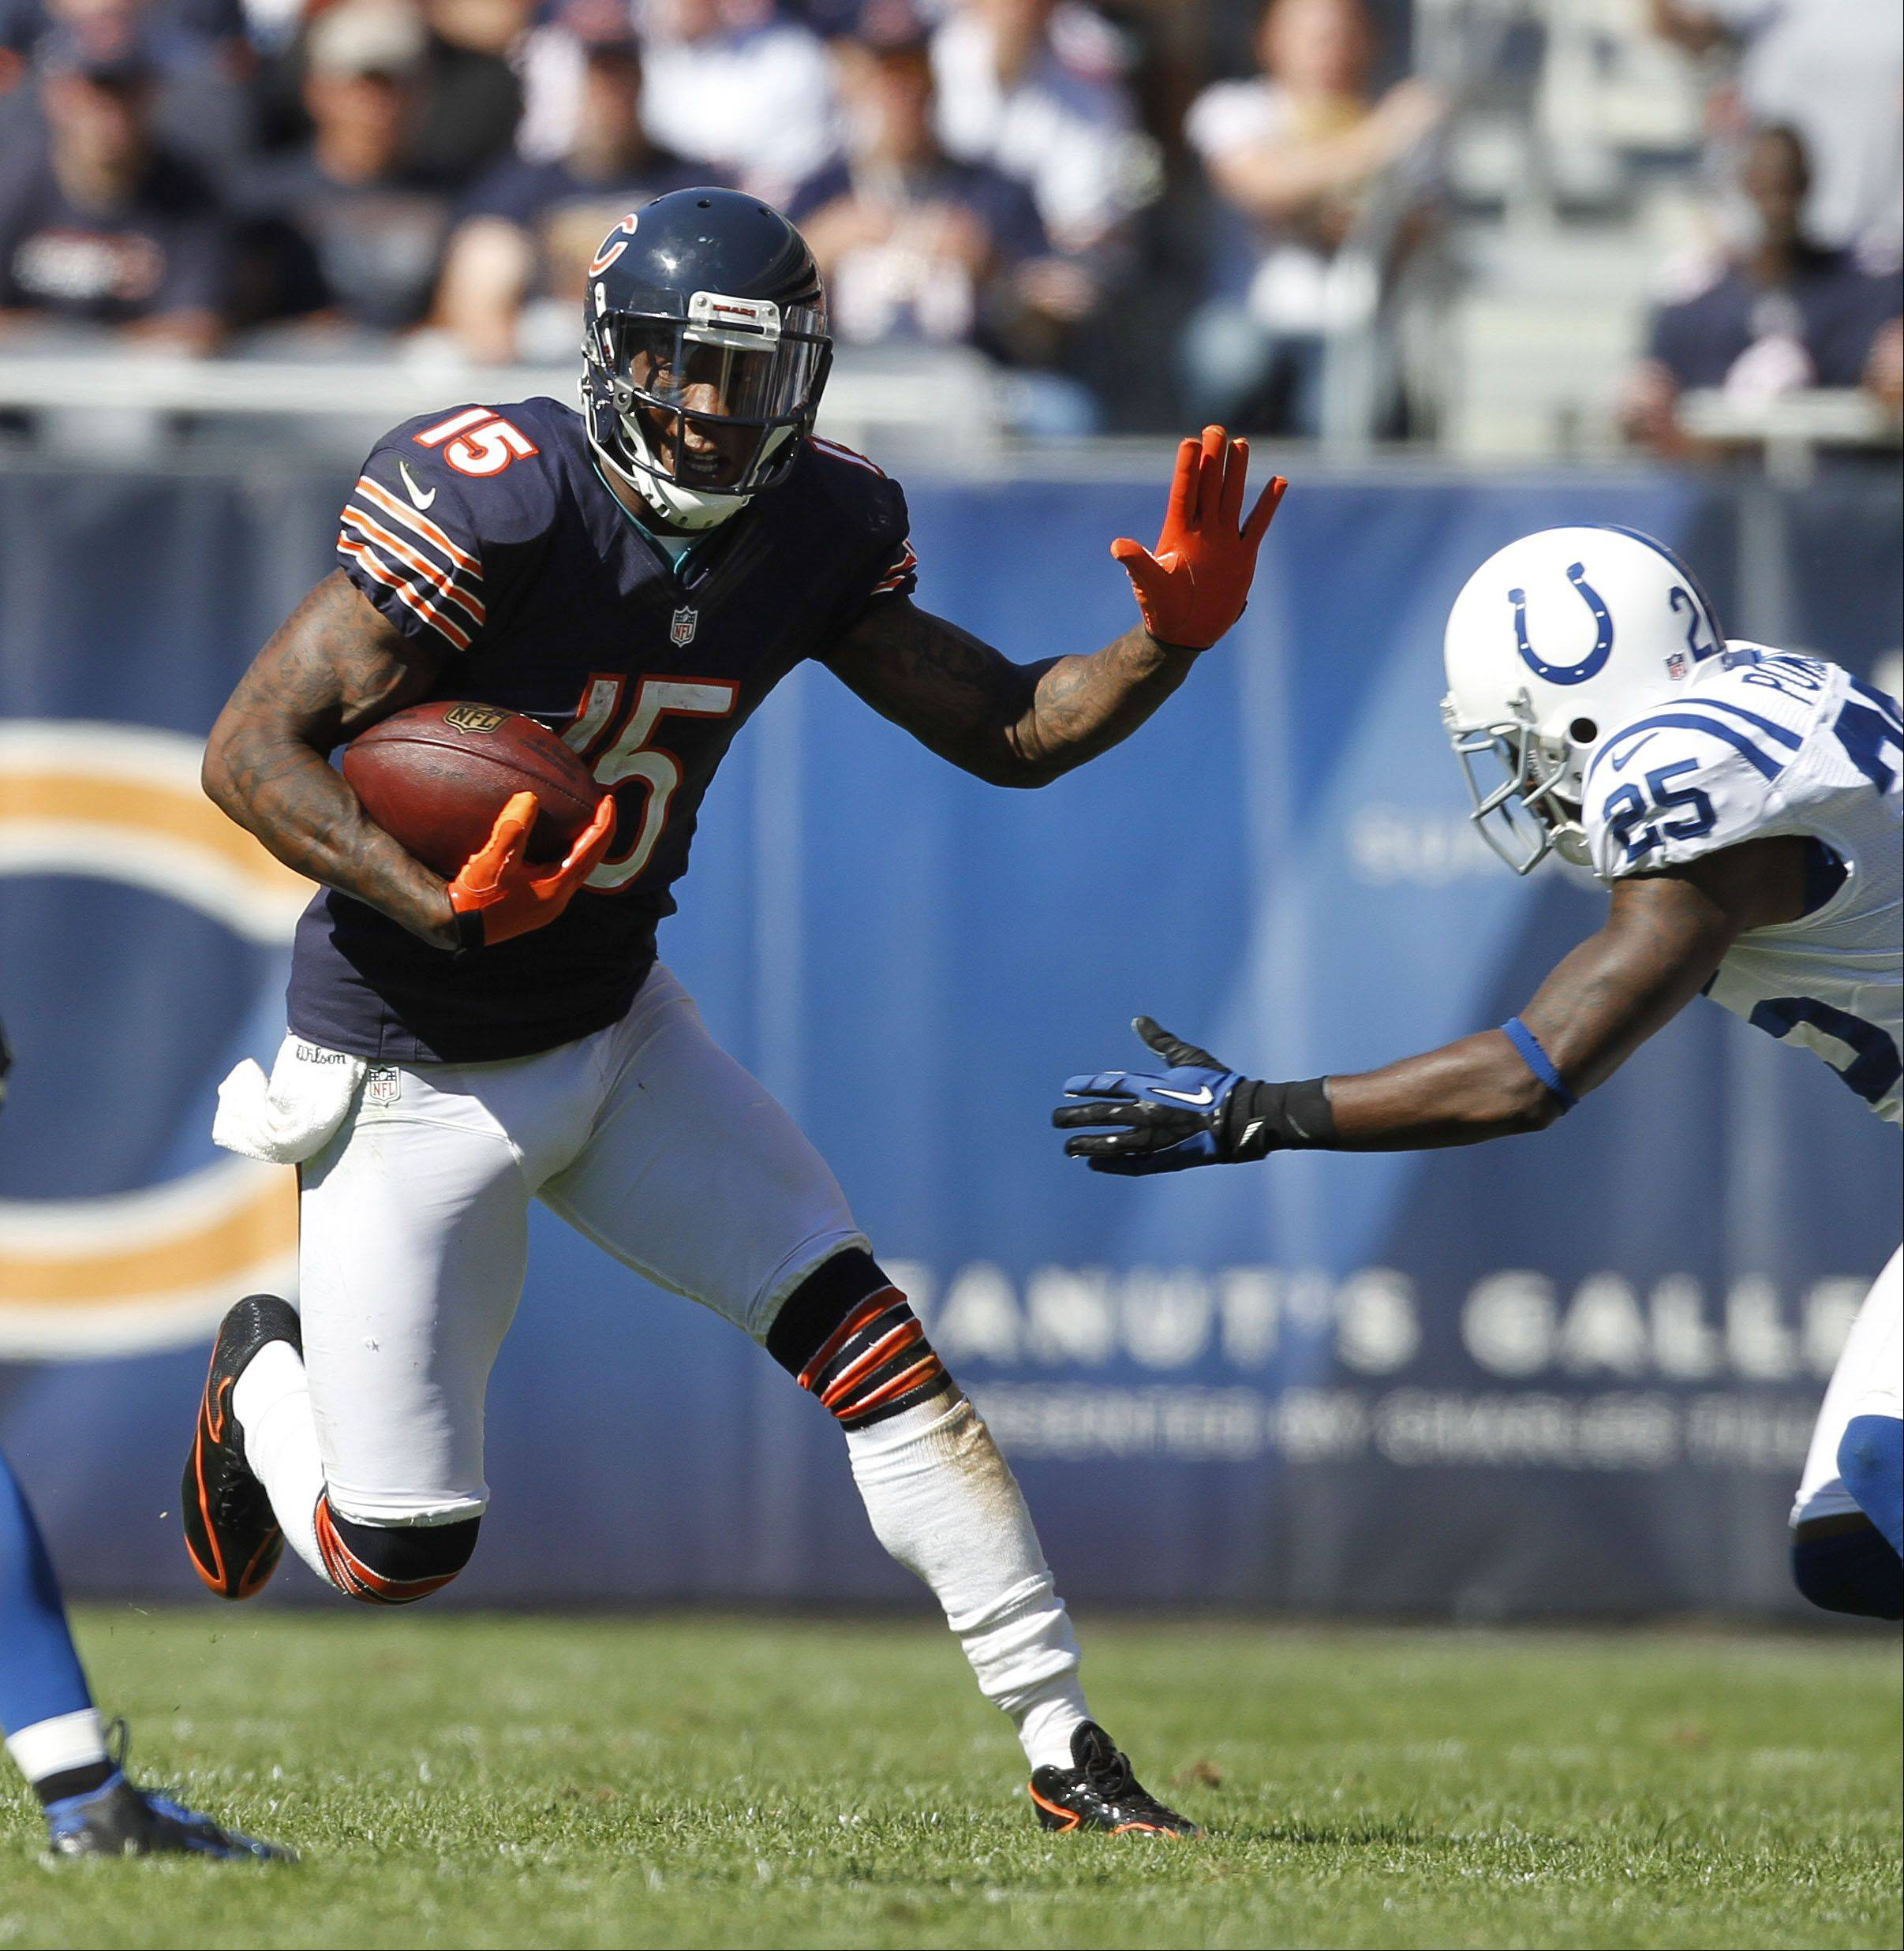 Chicago Bears wide receiver Brandon Marshall, left, runs past Indianapolis Colts cornerback Jerraud Powers during the Bears season opener against the Indianapolis Colts Sunday at Soldier Field in Chicago. The Bears won 41-21.